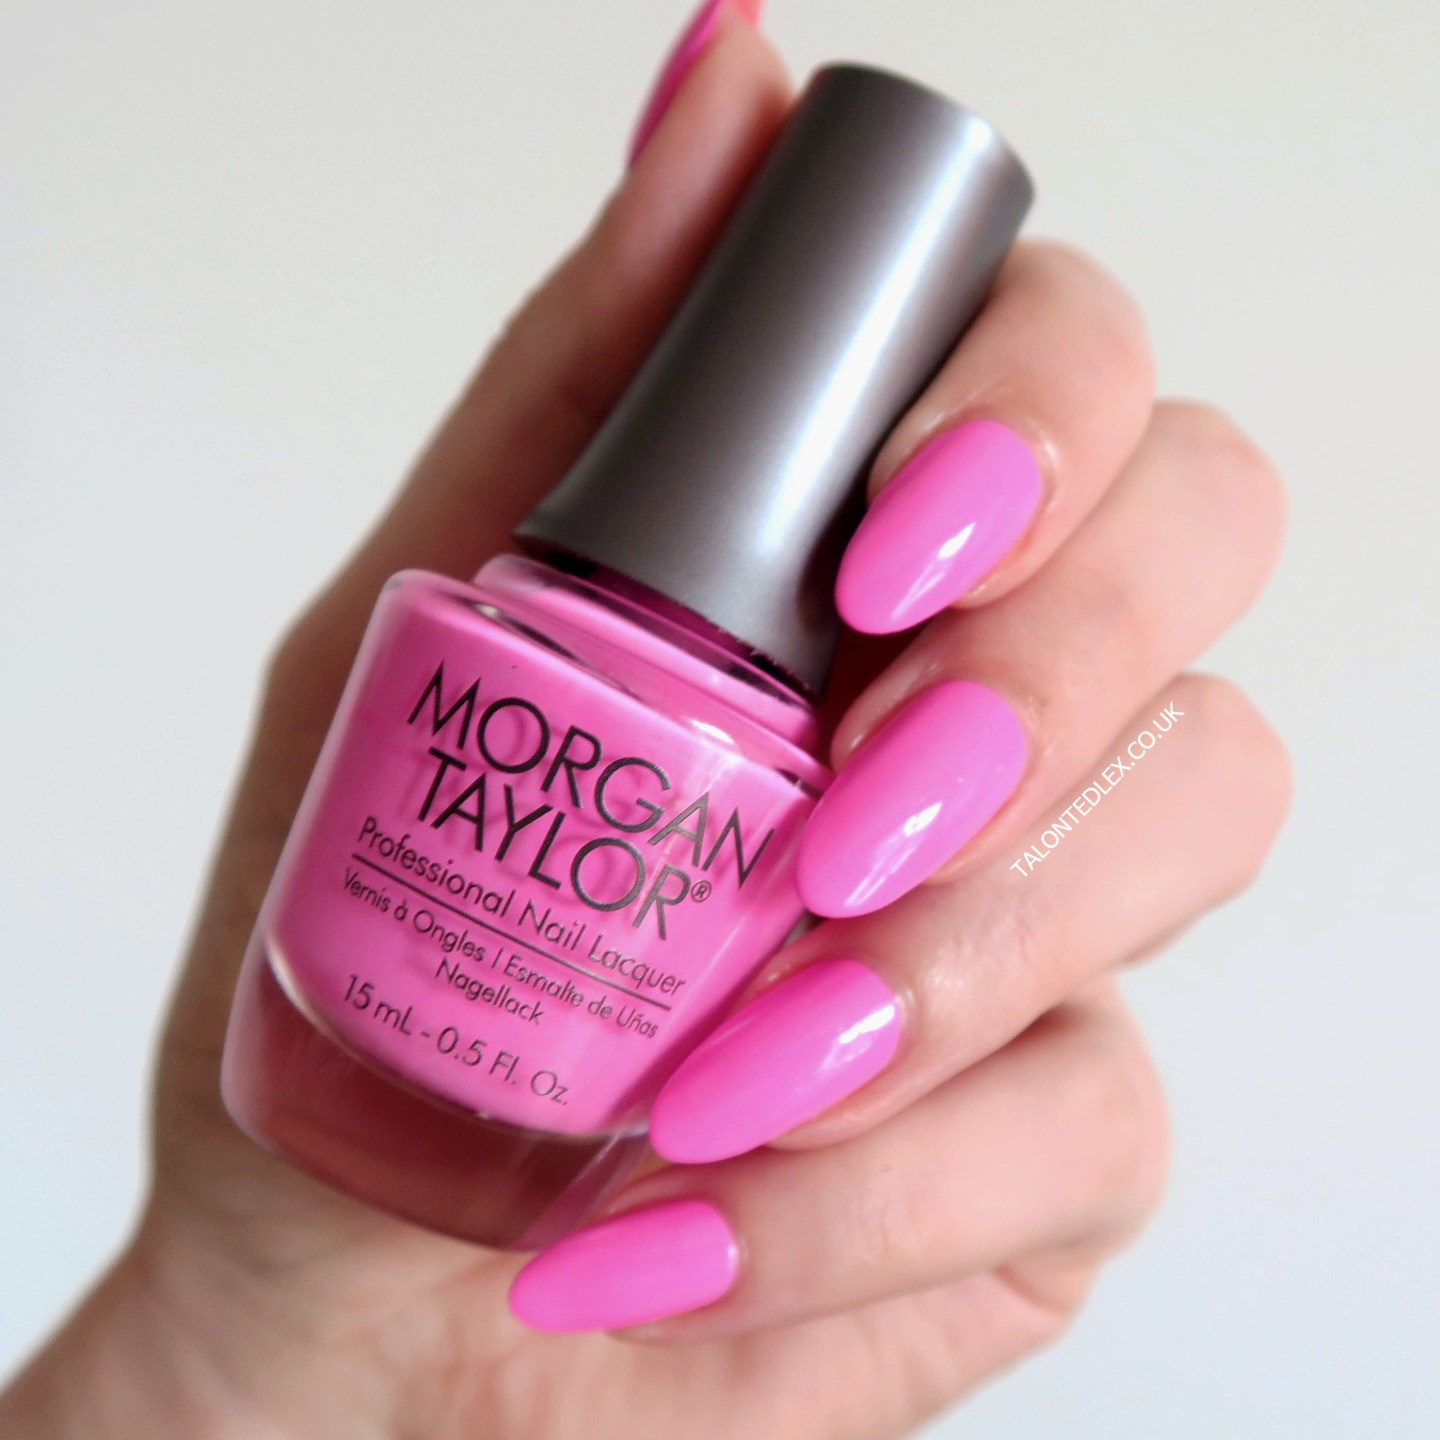 Repin and click to see the full Morgan Taylor Rocketman collection, including 'Tickle My Keys' - a pastel pink creme polish. New Morgan Taylor nail polish range. #talontedlex #morgantaylor #pinknails